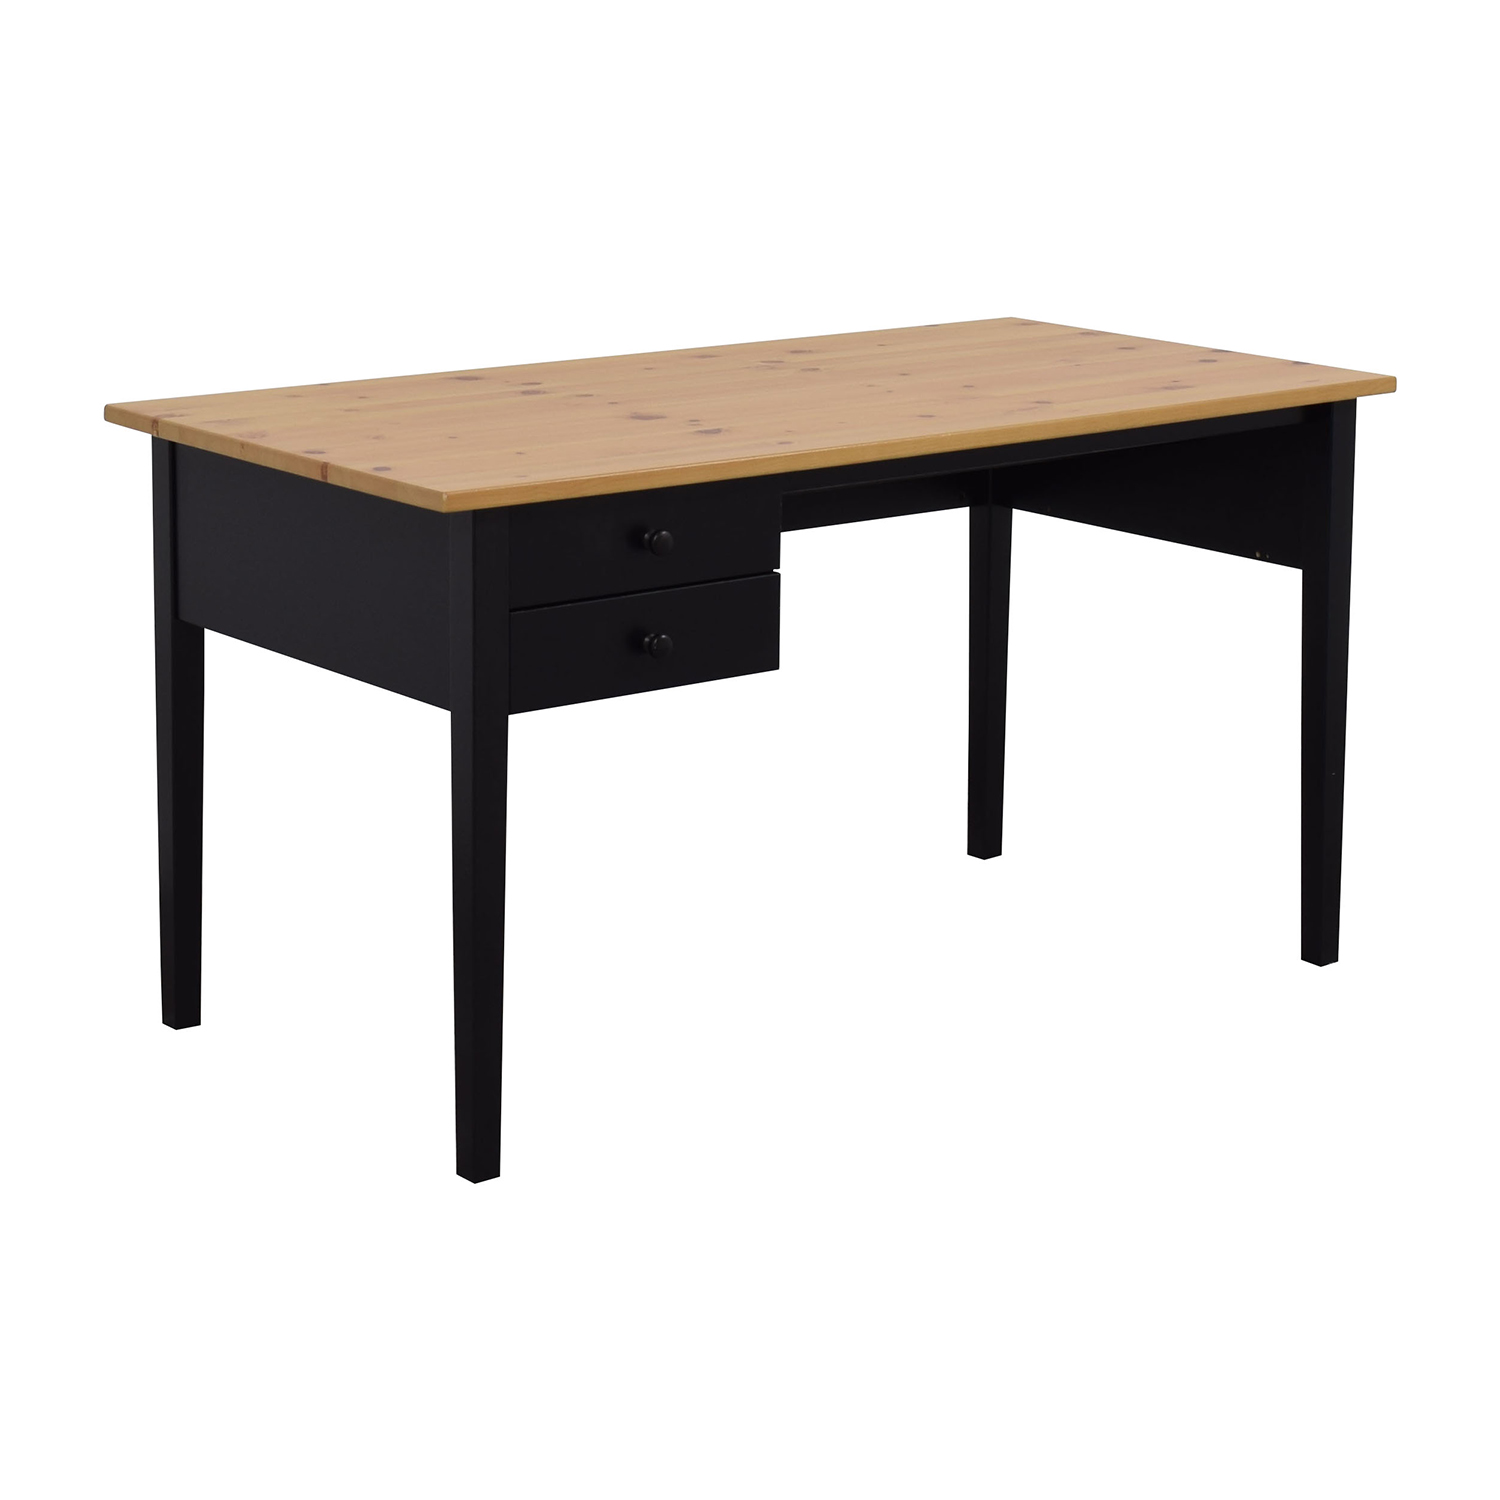 62 off ikea ikea arkelstorp desk tables